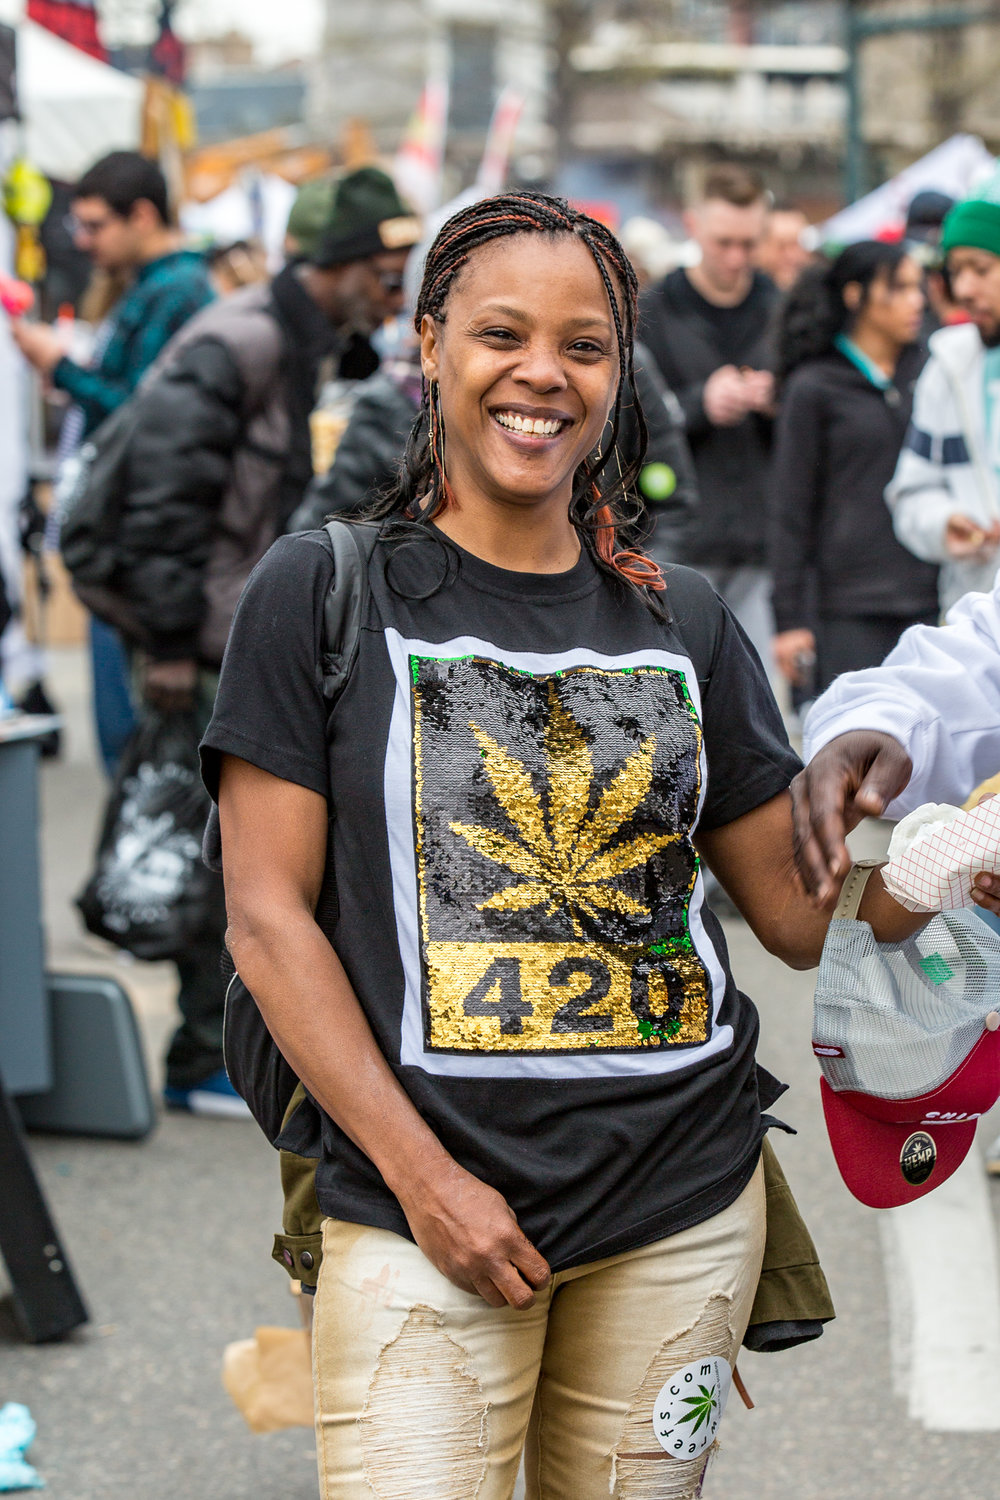 Mile High 420 Festival Civic Center Park Nikki A. Rae Photography 04.20.2018-19.jpg